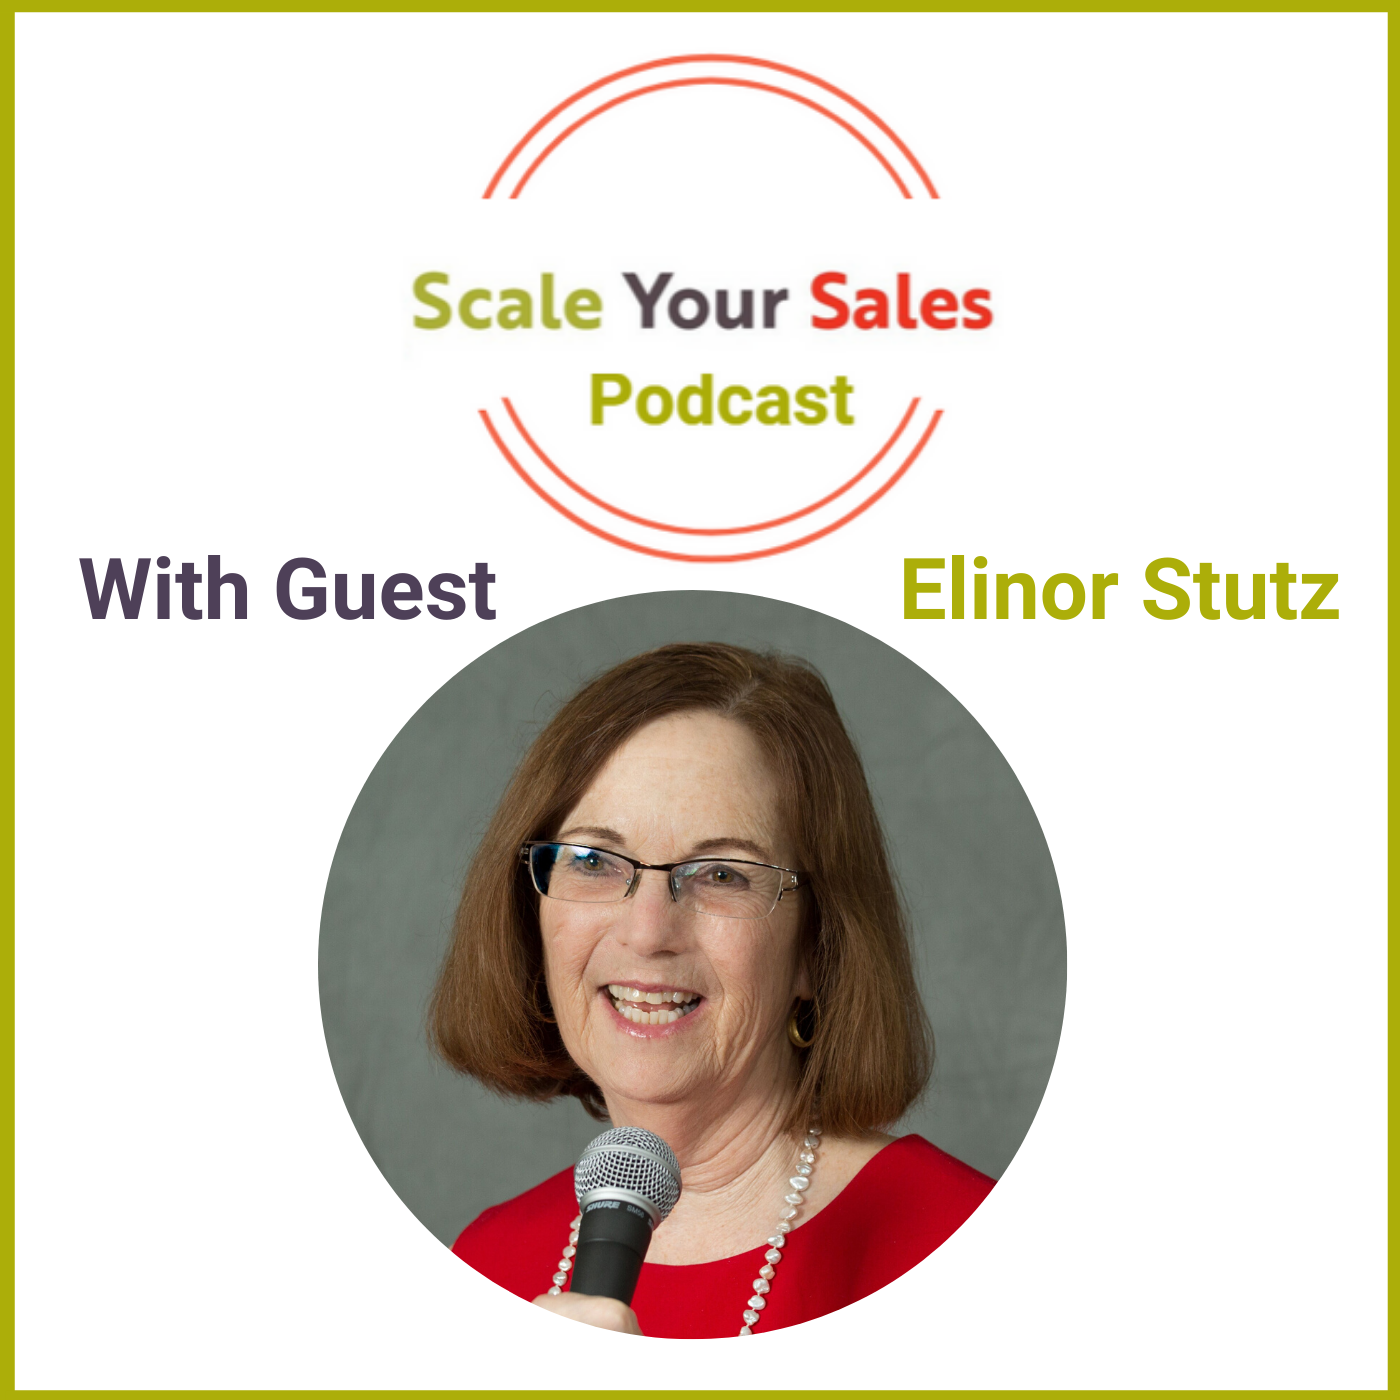 Episode 016 Elinor Stutz Trusted Relationships is the Differentiator for Selling Well